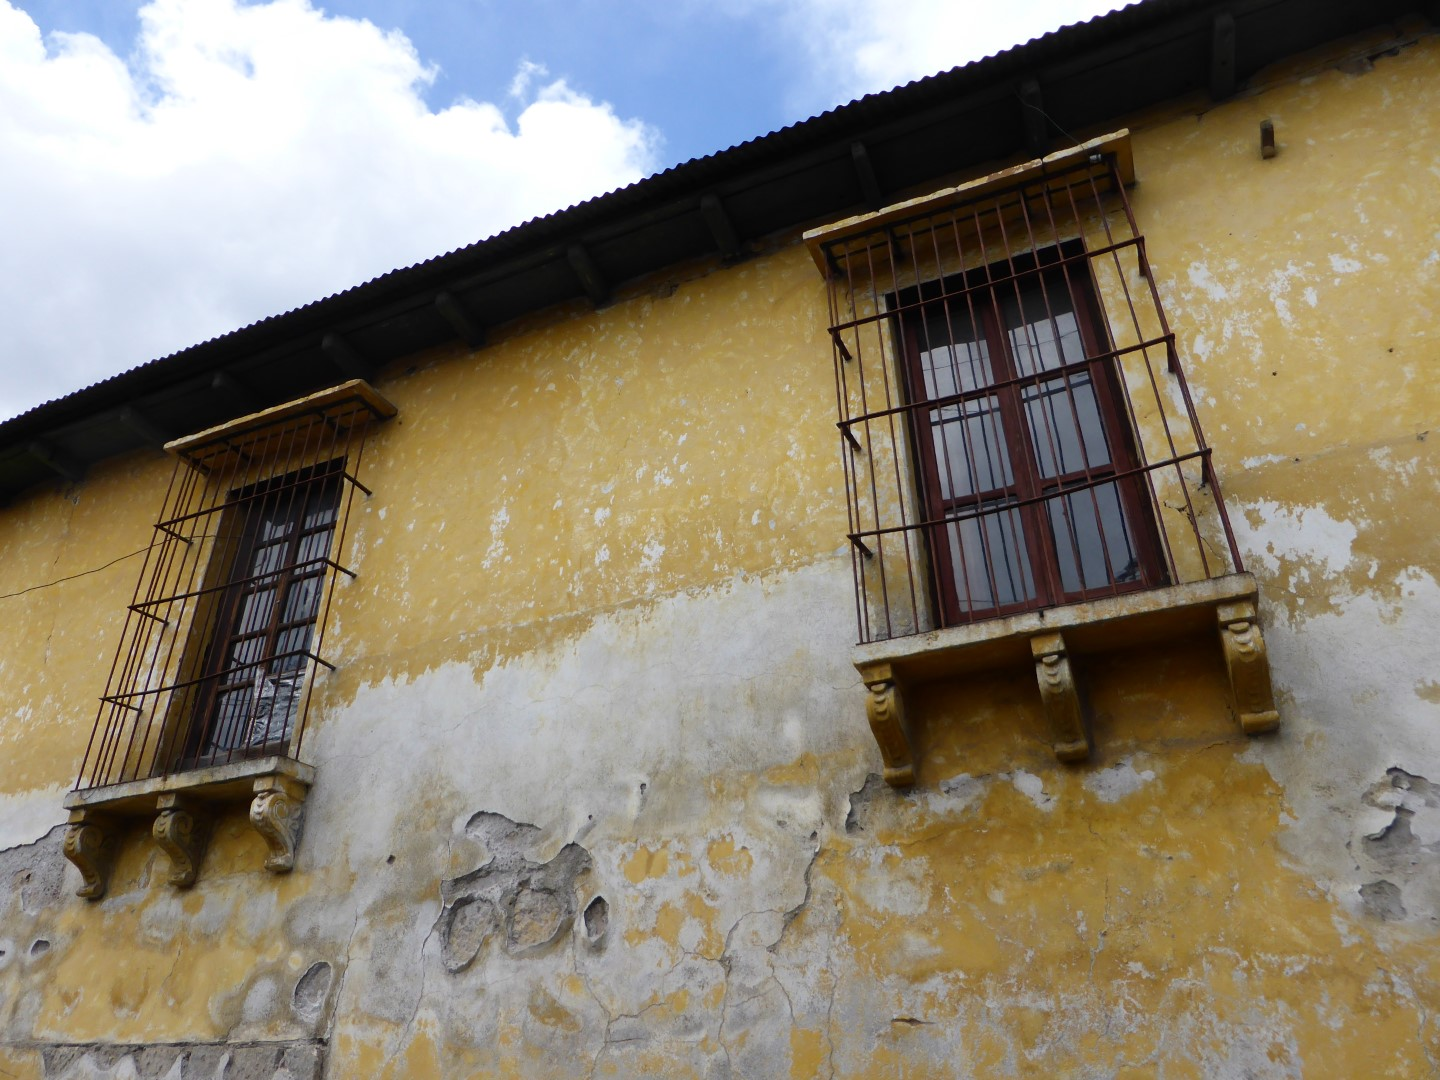 Old building in Quetzaltenango, Guatemala